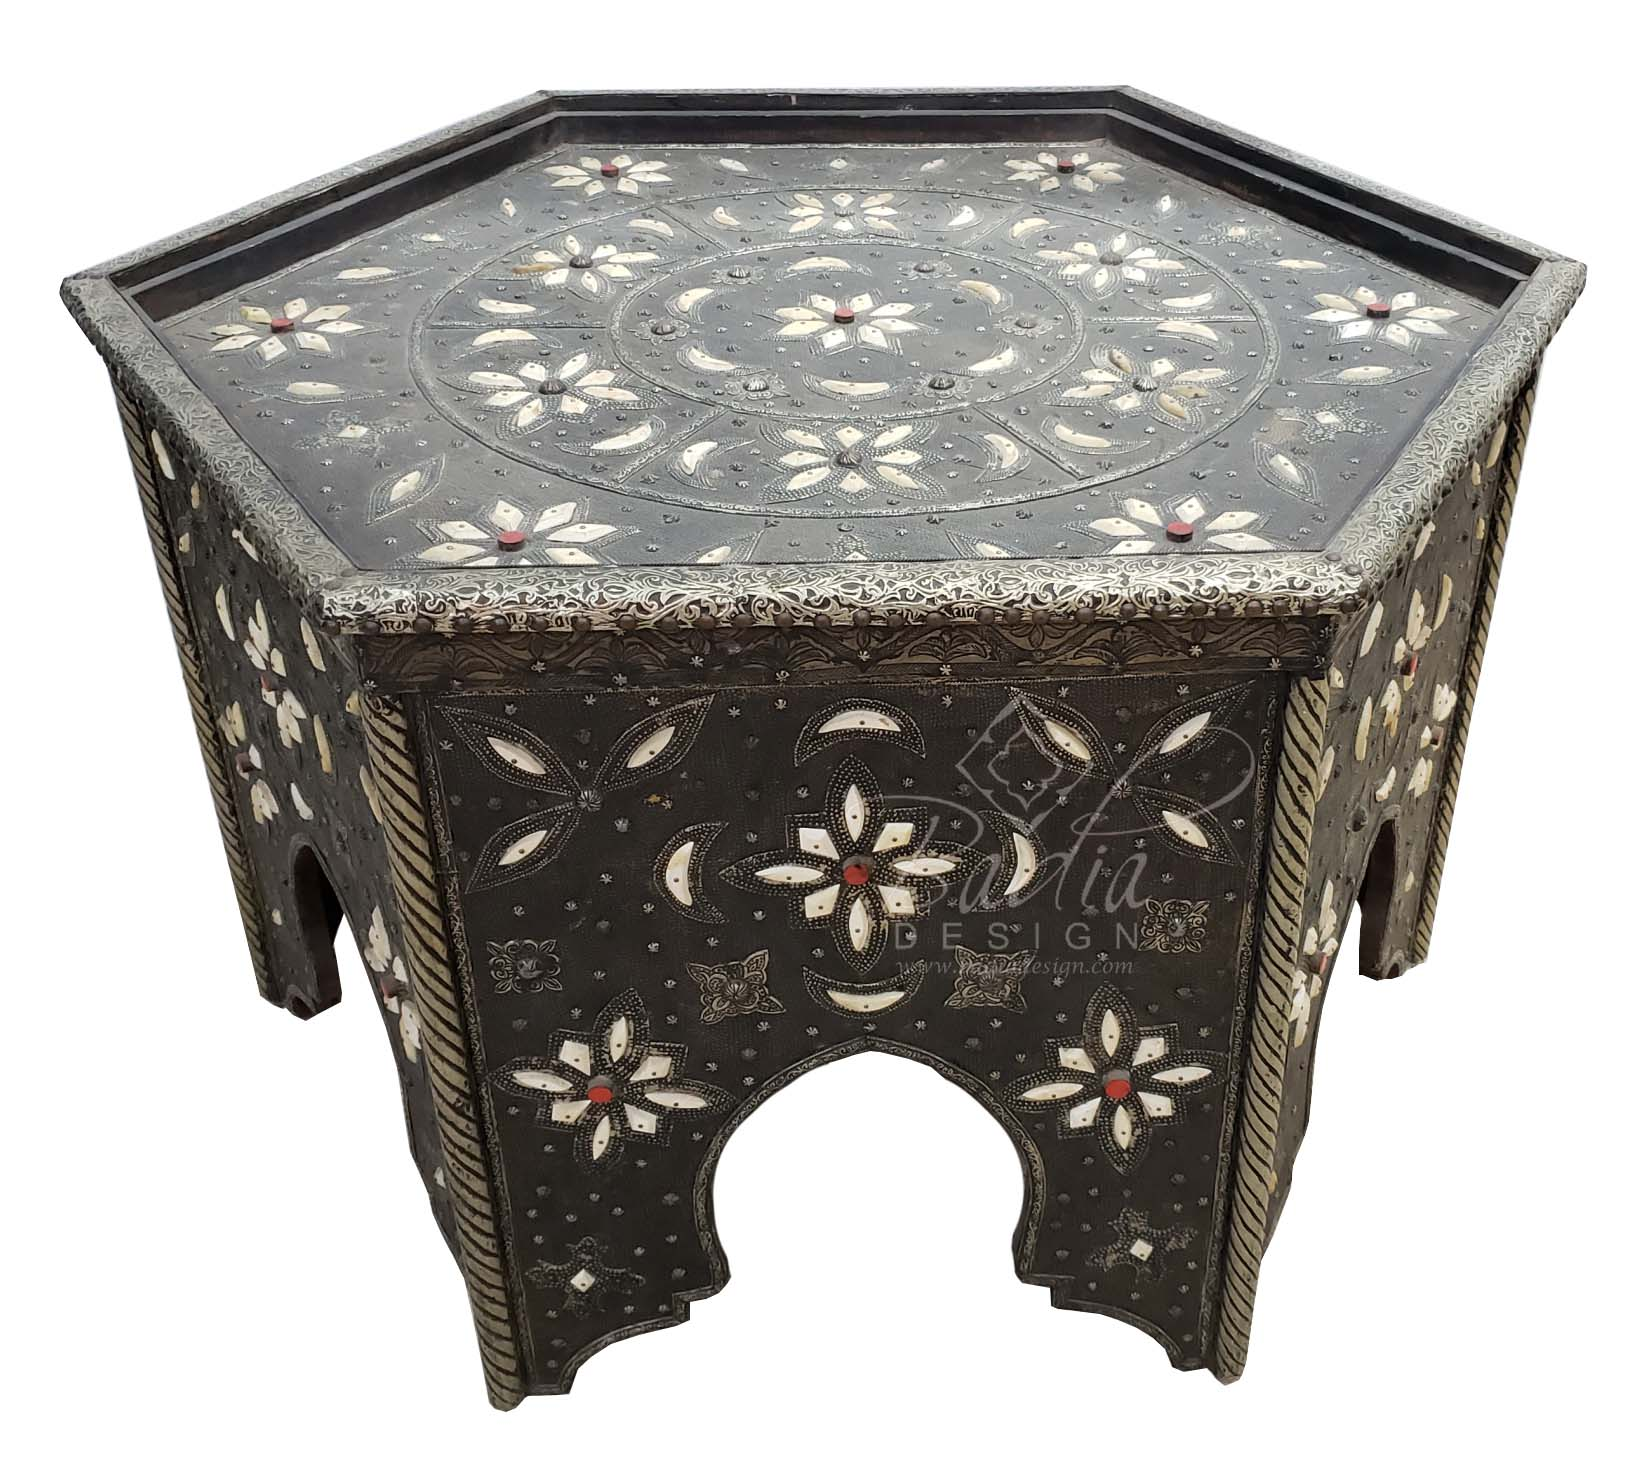 hexagon-shaped-metal-and-bone-coffee-table-mb-ct015.jpg